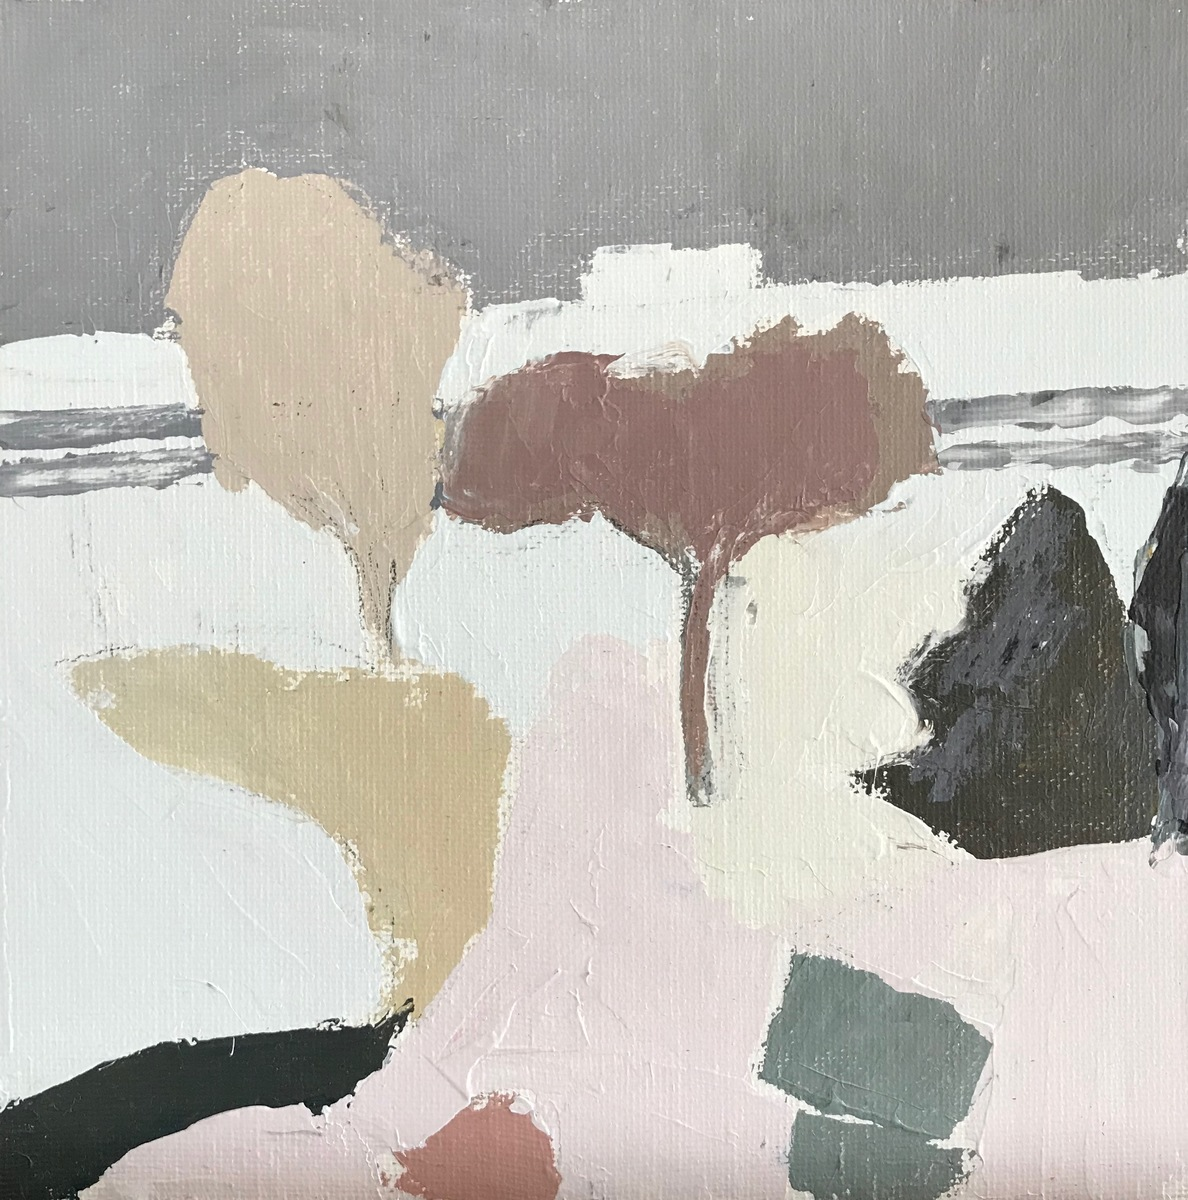 Painting 2019-2020 Landscape (Witch Hollow)